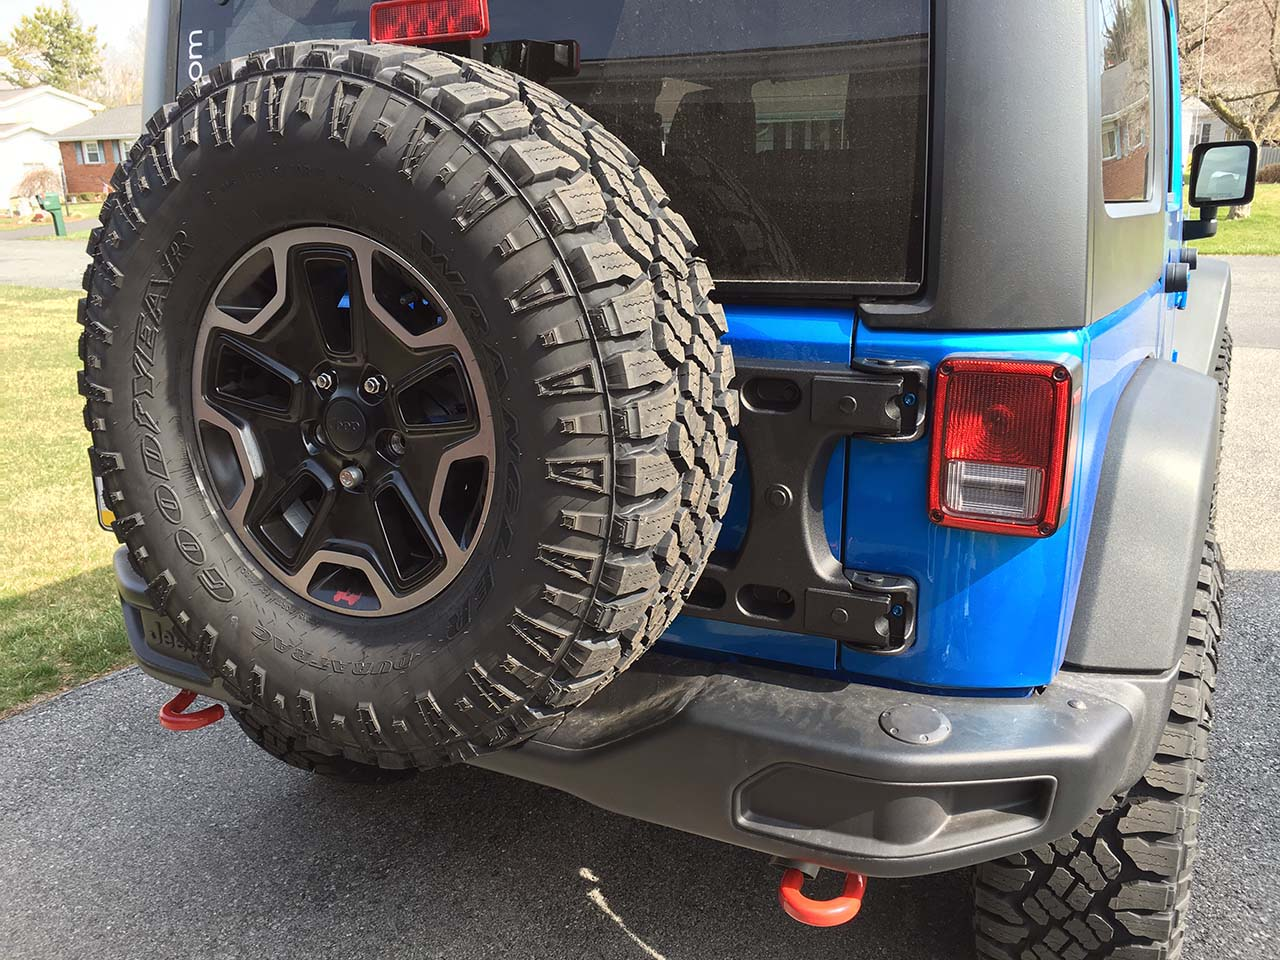 Jeep Wheels Fitment Guide, Spacers, Adapters, CJ, YJ, TJ ...